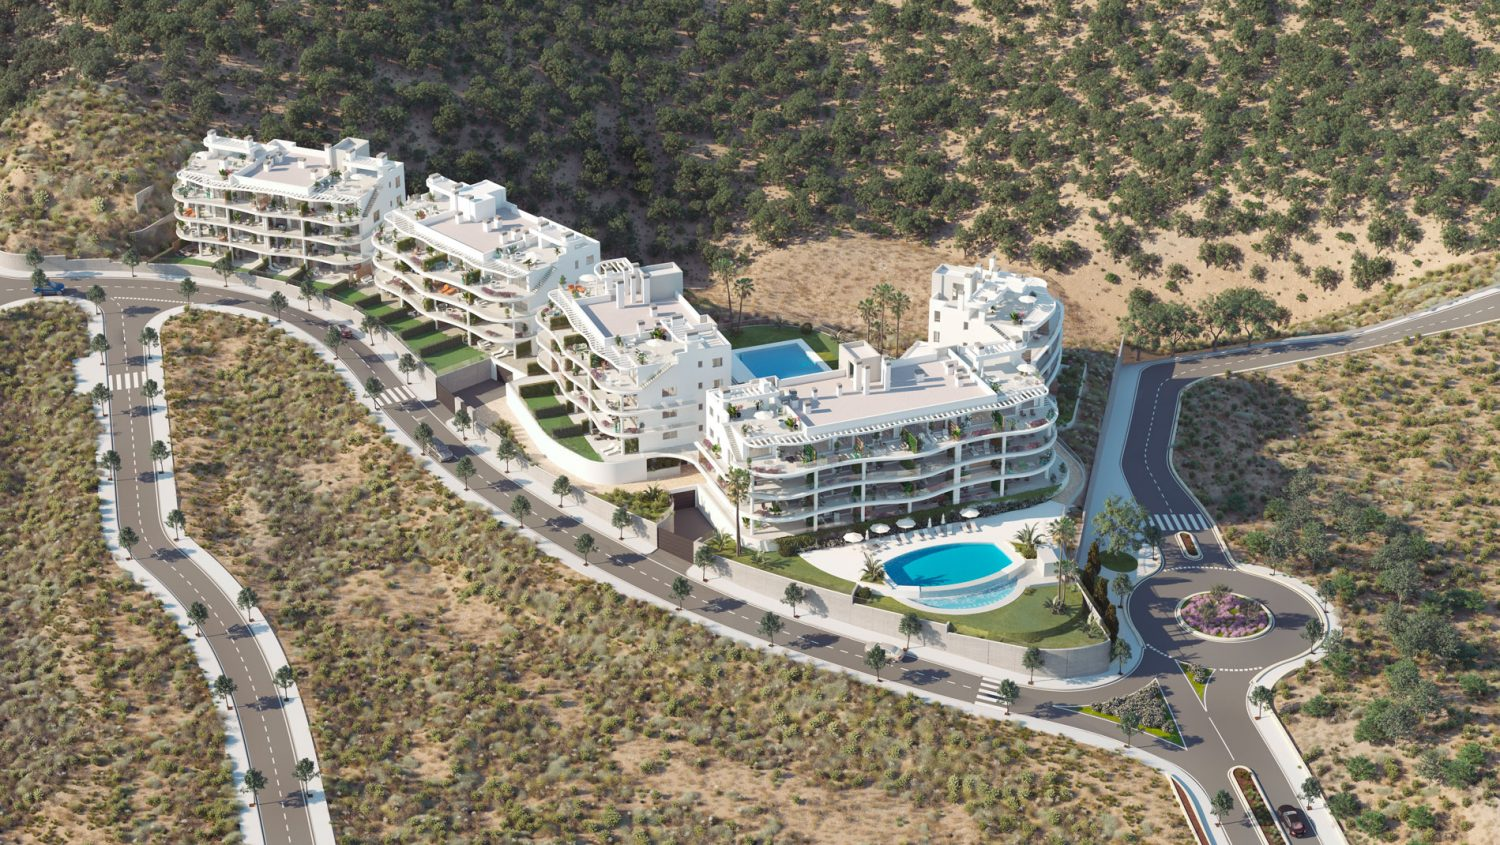 Homes of 2 and 3 bedrooms with large terraces and windows, Fuengirola